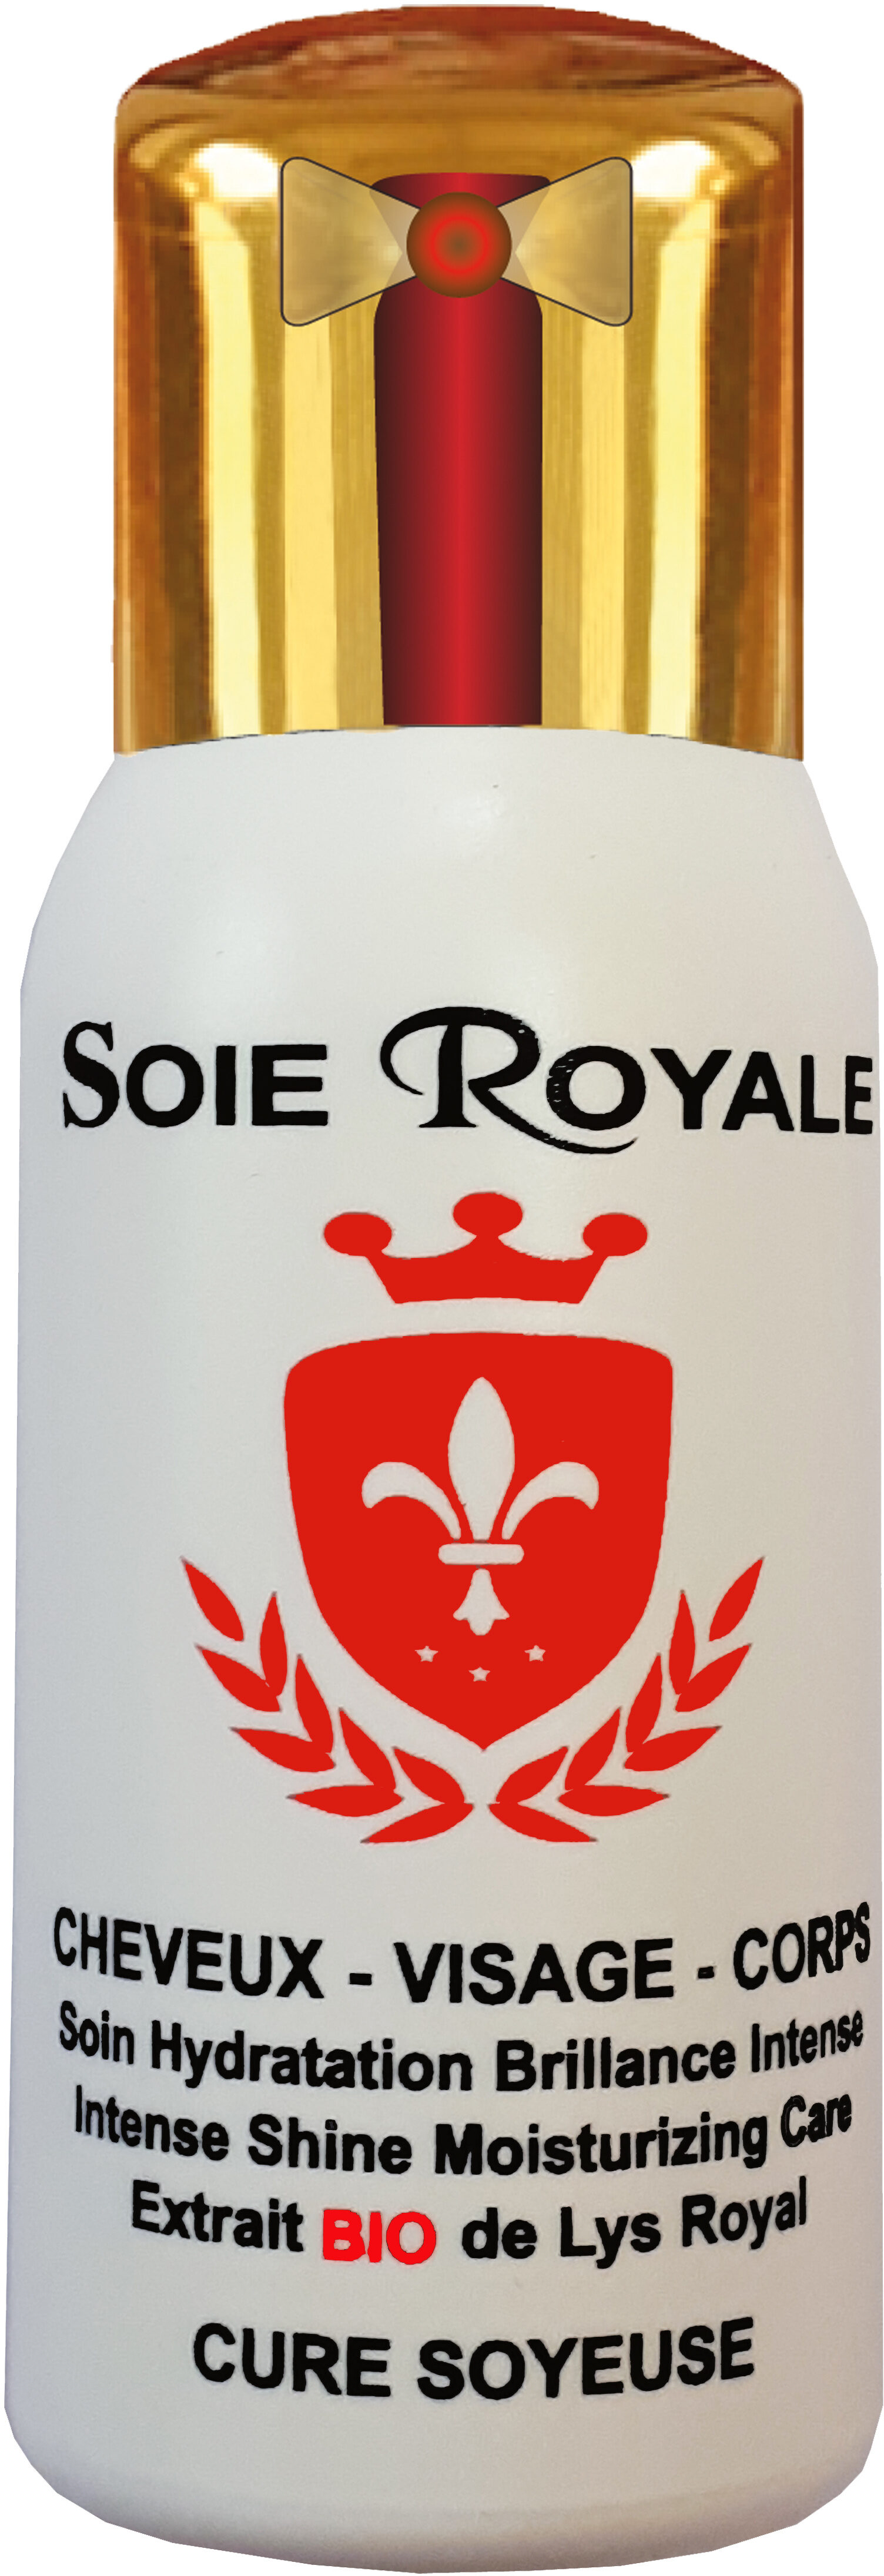 Soie royale BIO Cure Soyeuse Soin Hydratation Brillance Intense Cheveux Visage Corps - Product - fr